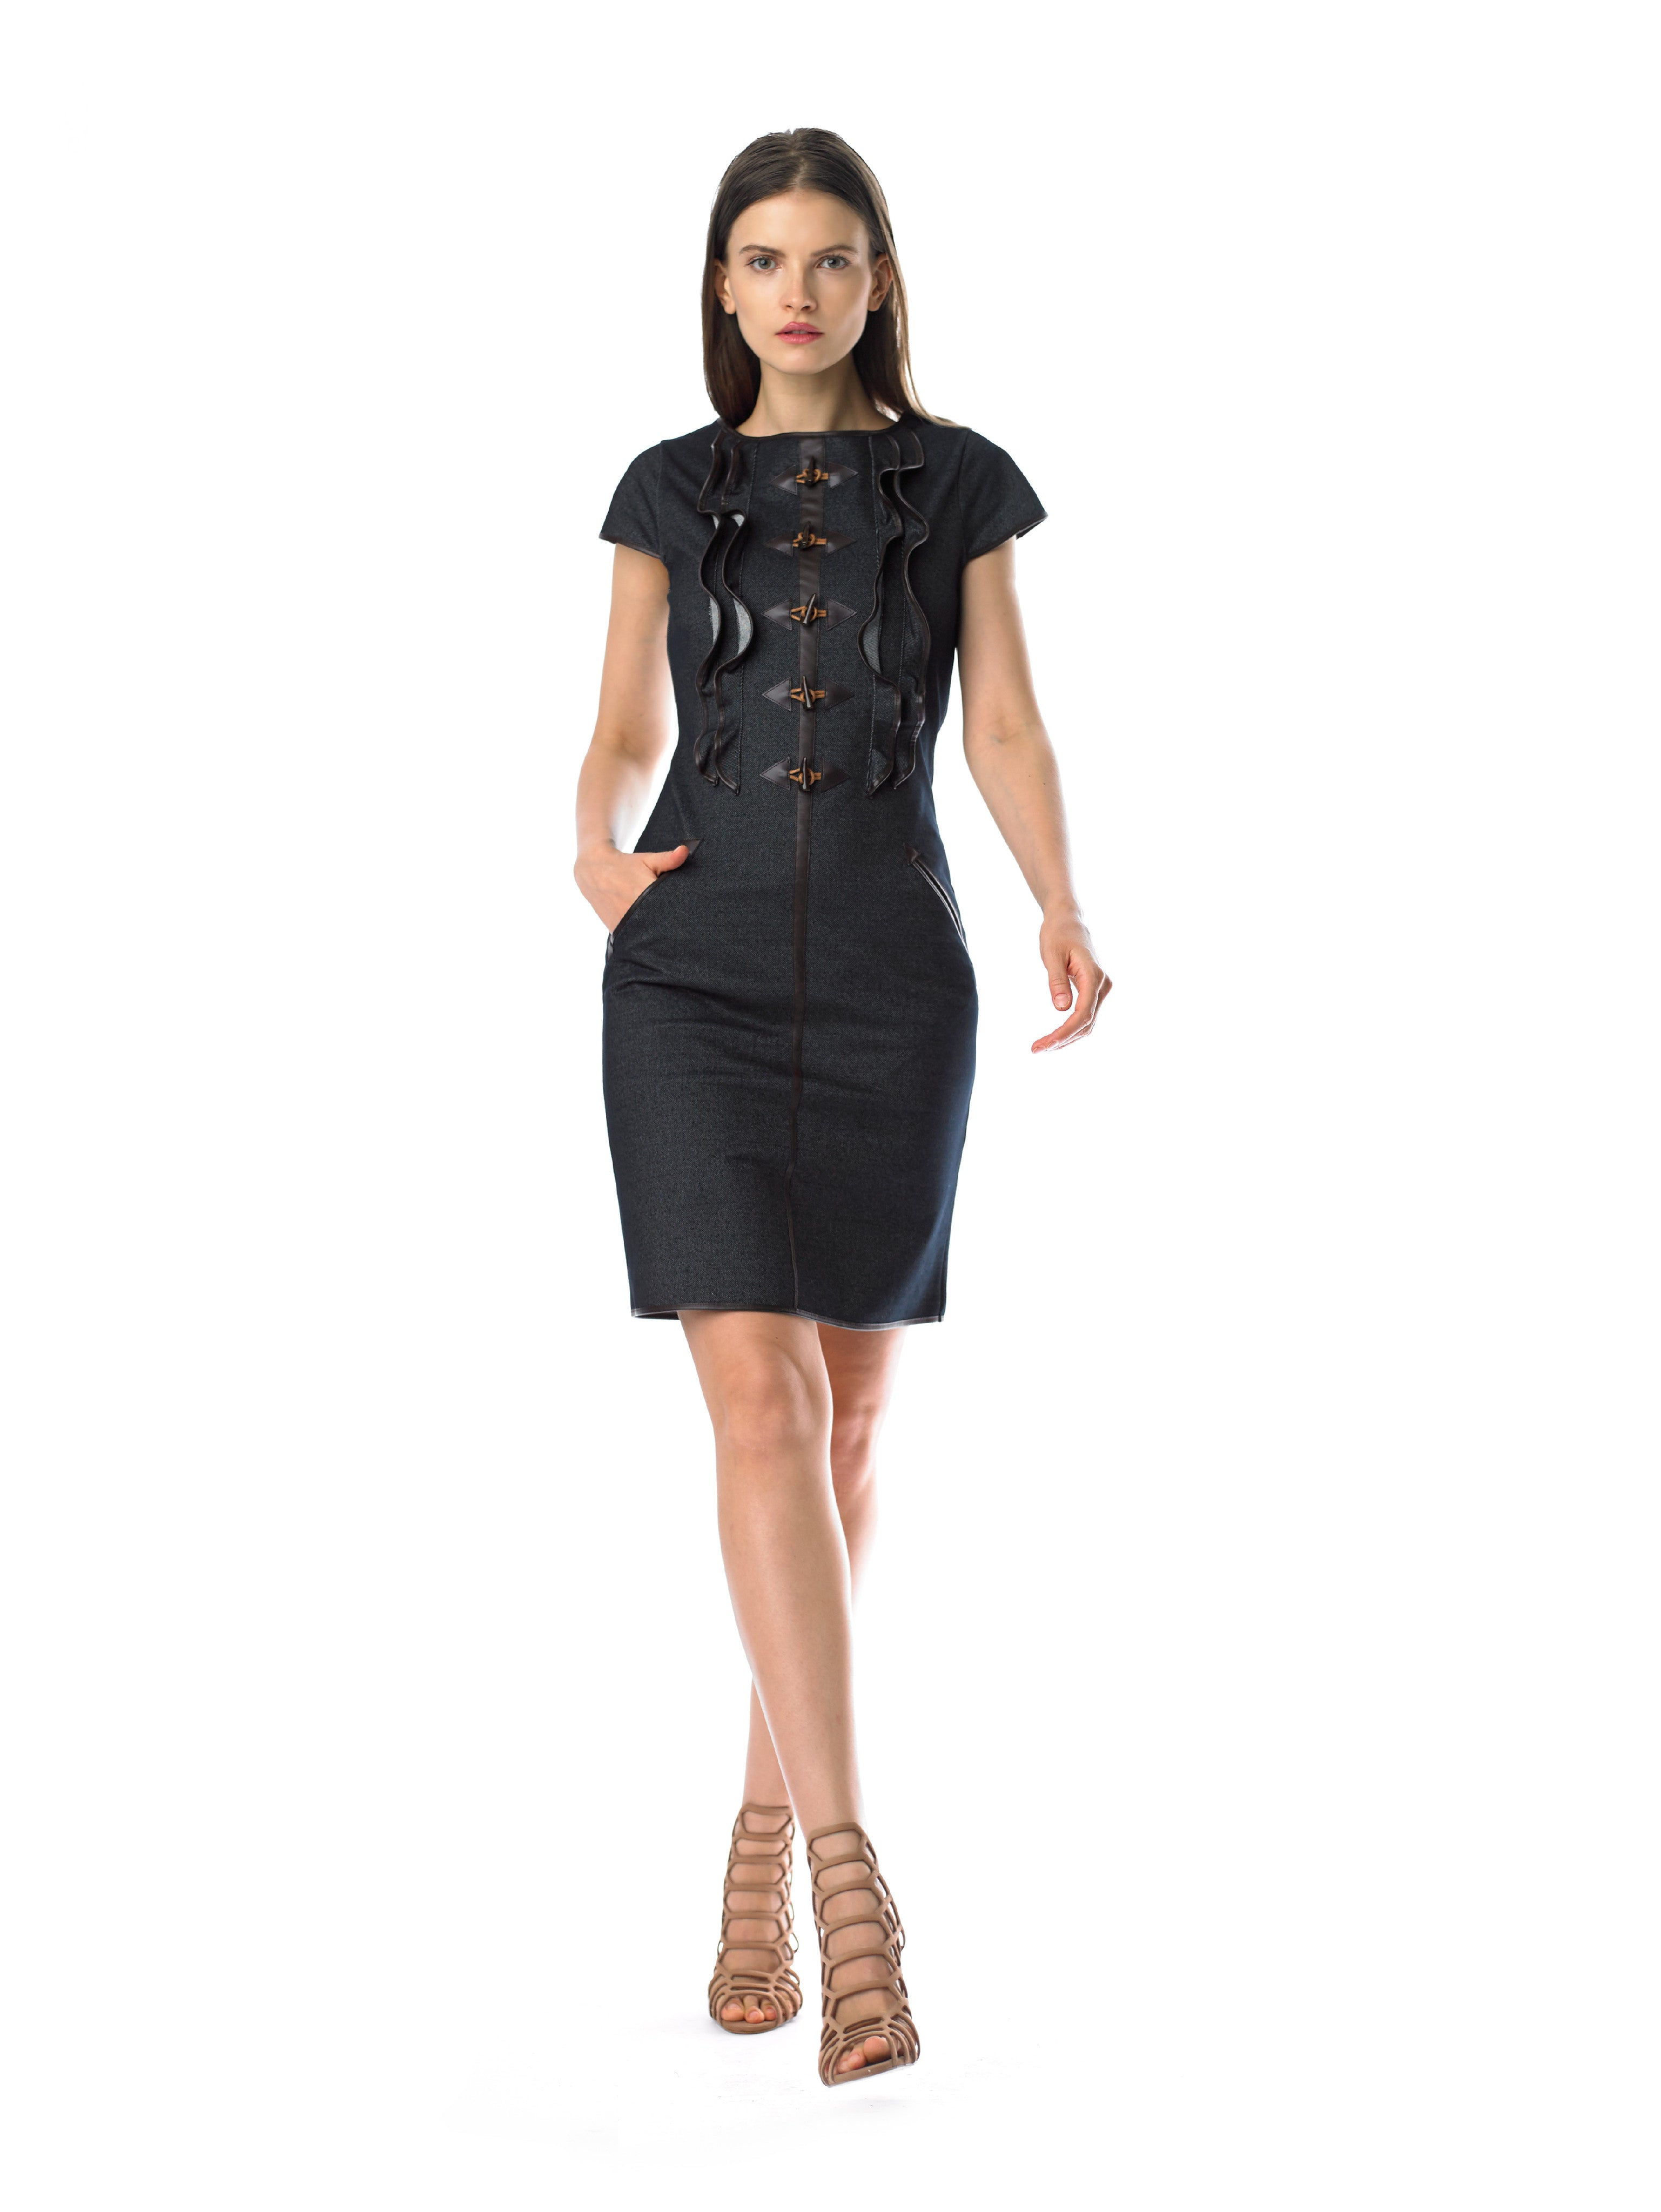 Historic New York Paleolithic denim sheath dress with cap sleeves